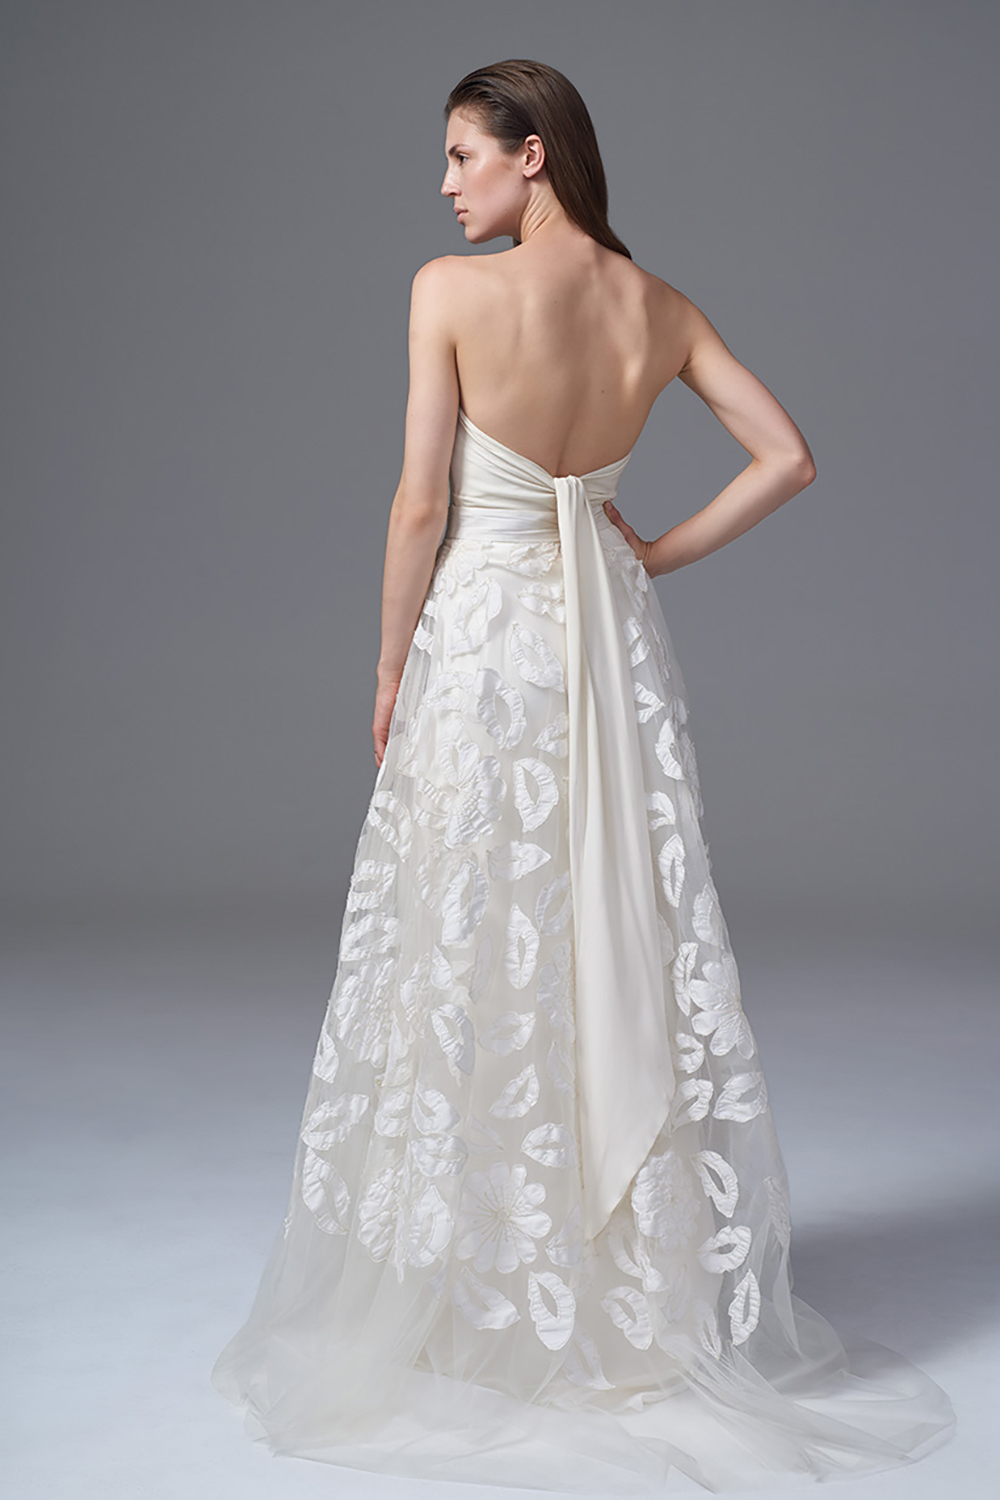 THE SUSIE HAND APPLIQUED AND TULLE SKIRT WITH THE DITA LACE APPLIQUED CORSET. BRIDAL WEDDING DRESS BY HALFPENNY LONDON